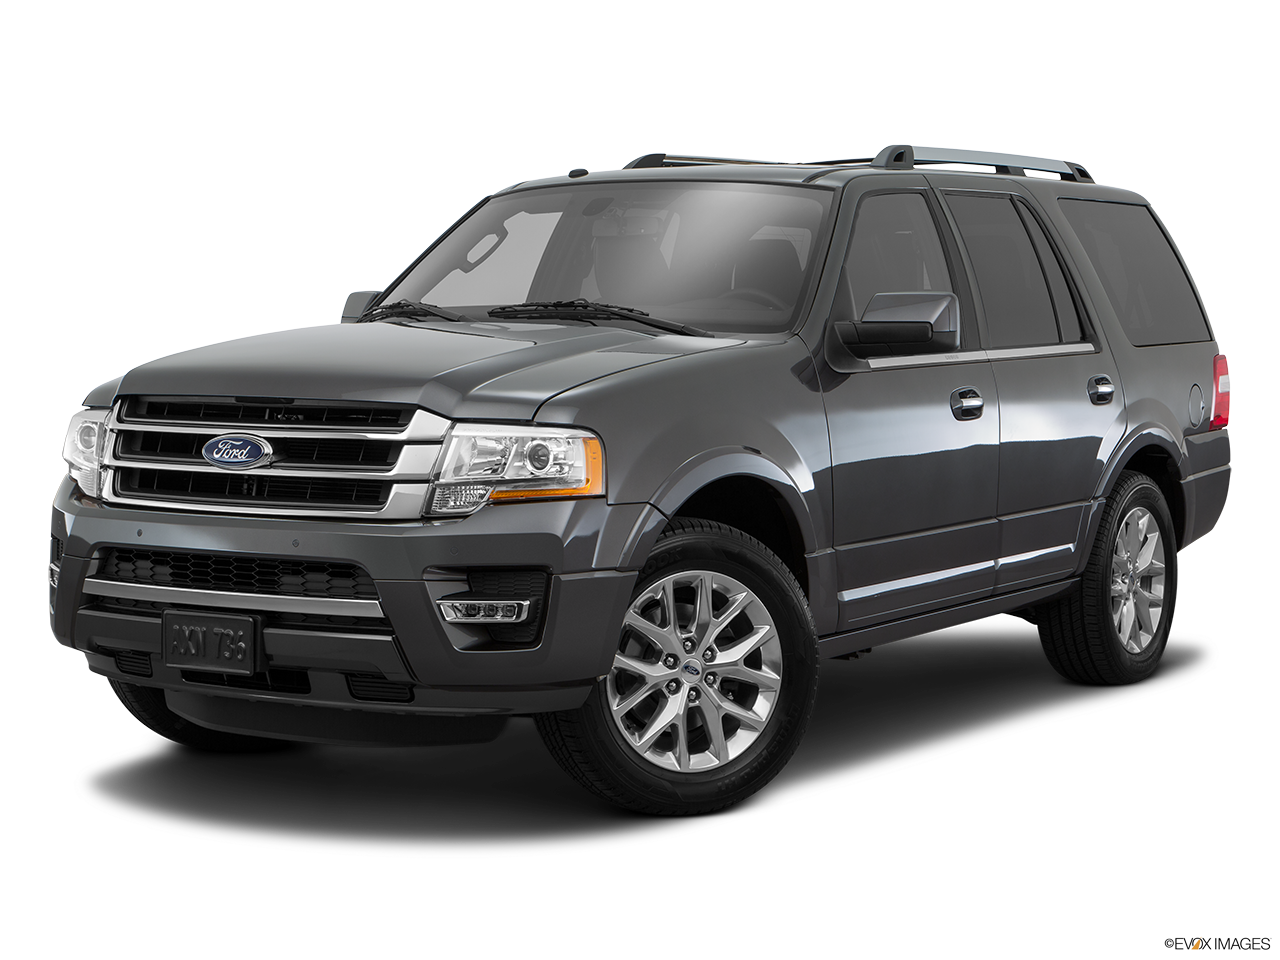 2016 ford expedition for sale near decatur mattoon and tuscola. Black Bedroom Furniture Sets. Home Design Ideas